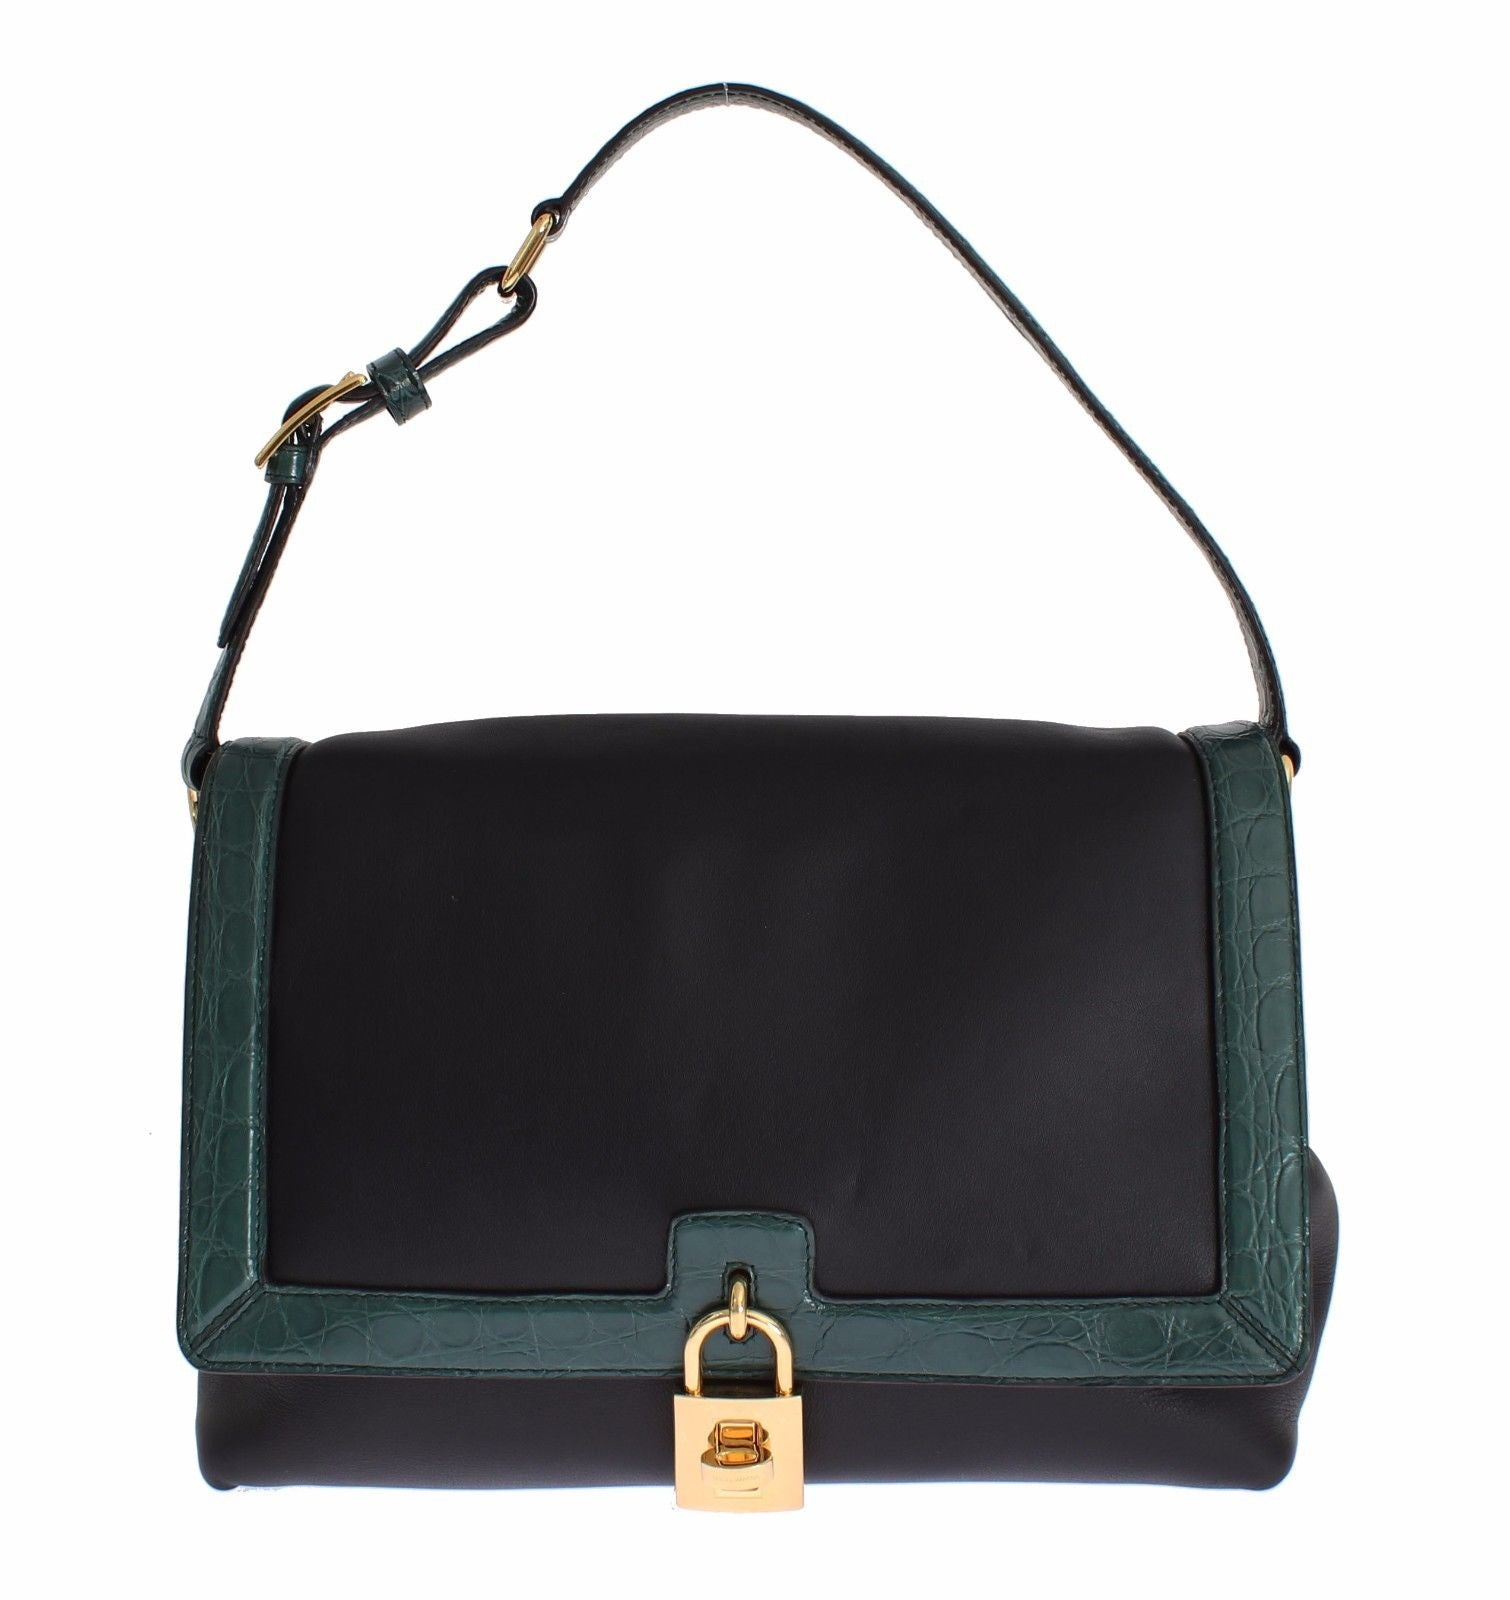 Dolce & Gabbana - MISS BONITA Green Caiman Leather Hand Shoulder Bag